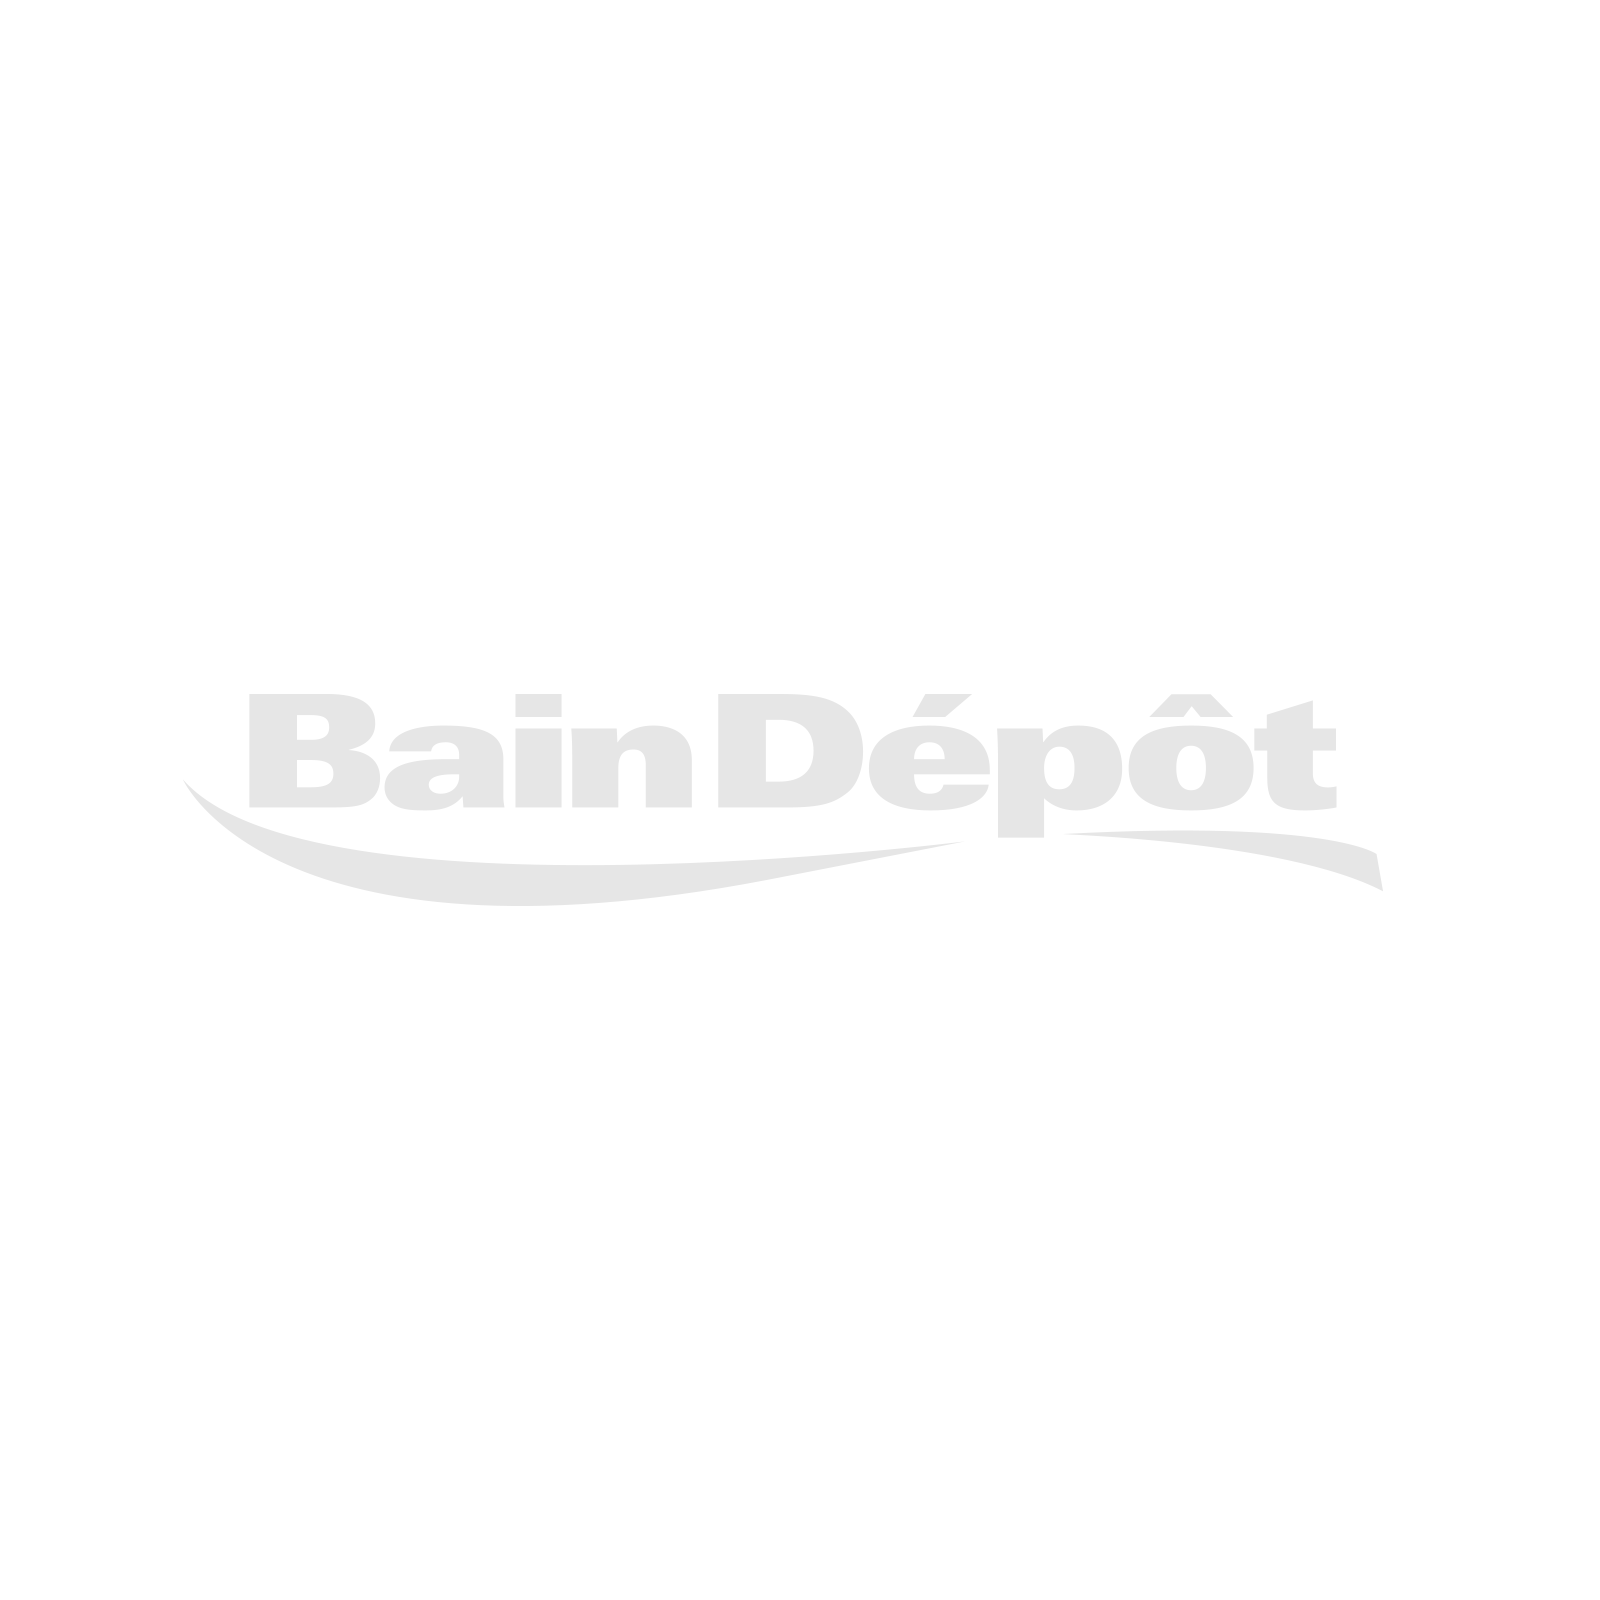 "48"" x 36"" rectangular shower base for alcove installation"